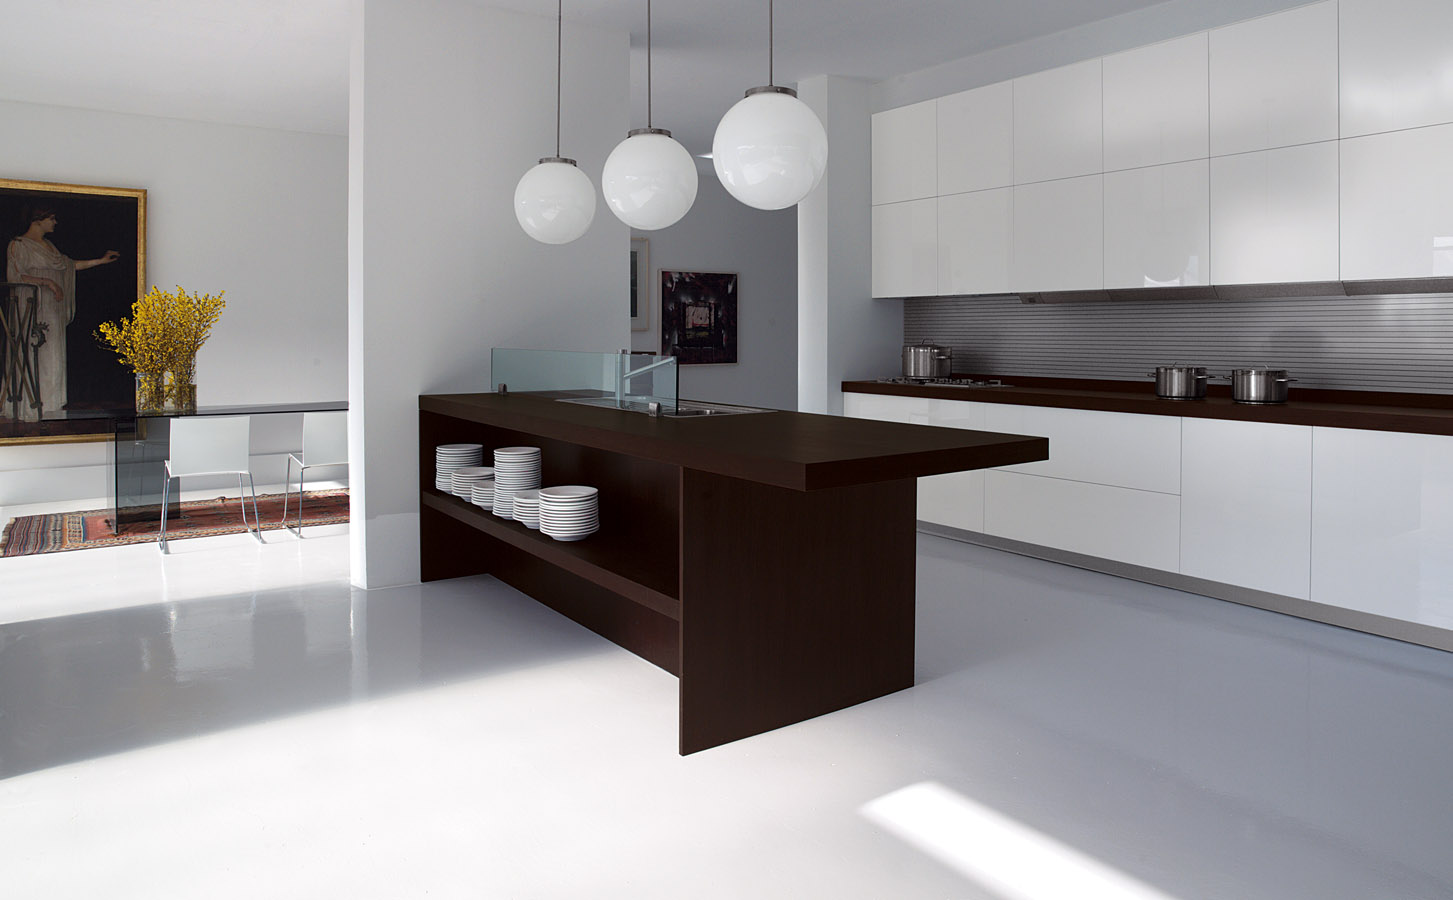 kitchen designs schiffini simple contemporary kitchen interior kitchen design ideas set